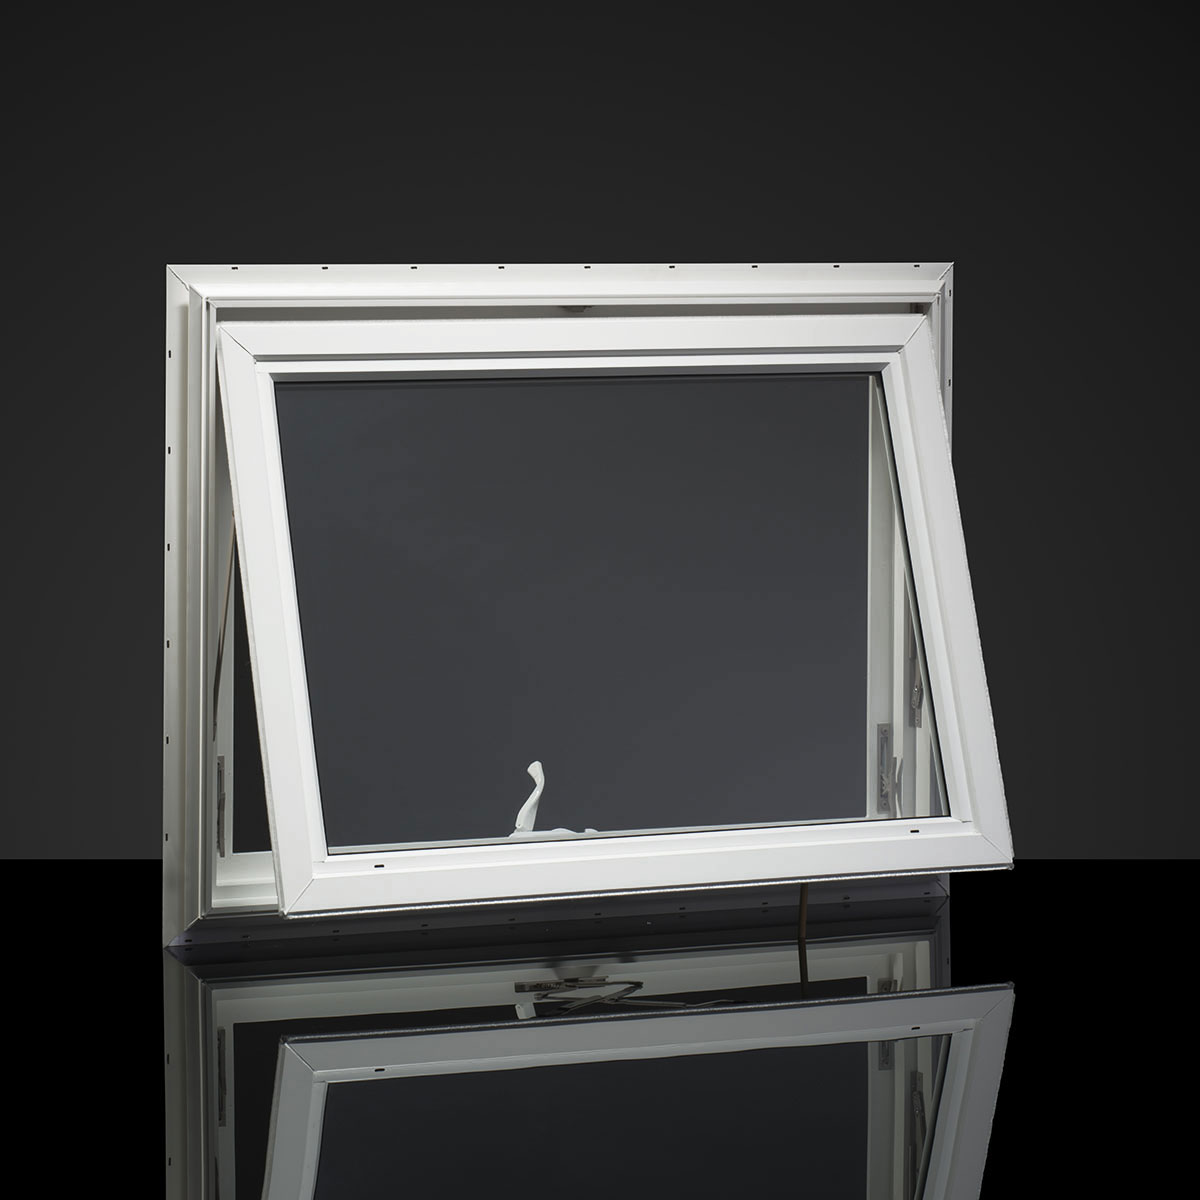 Awning Window | Product Information | MI Windows and Doors